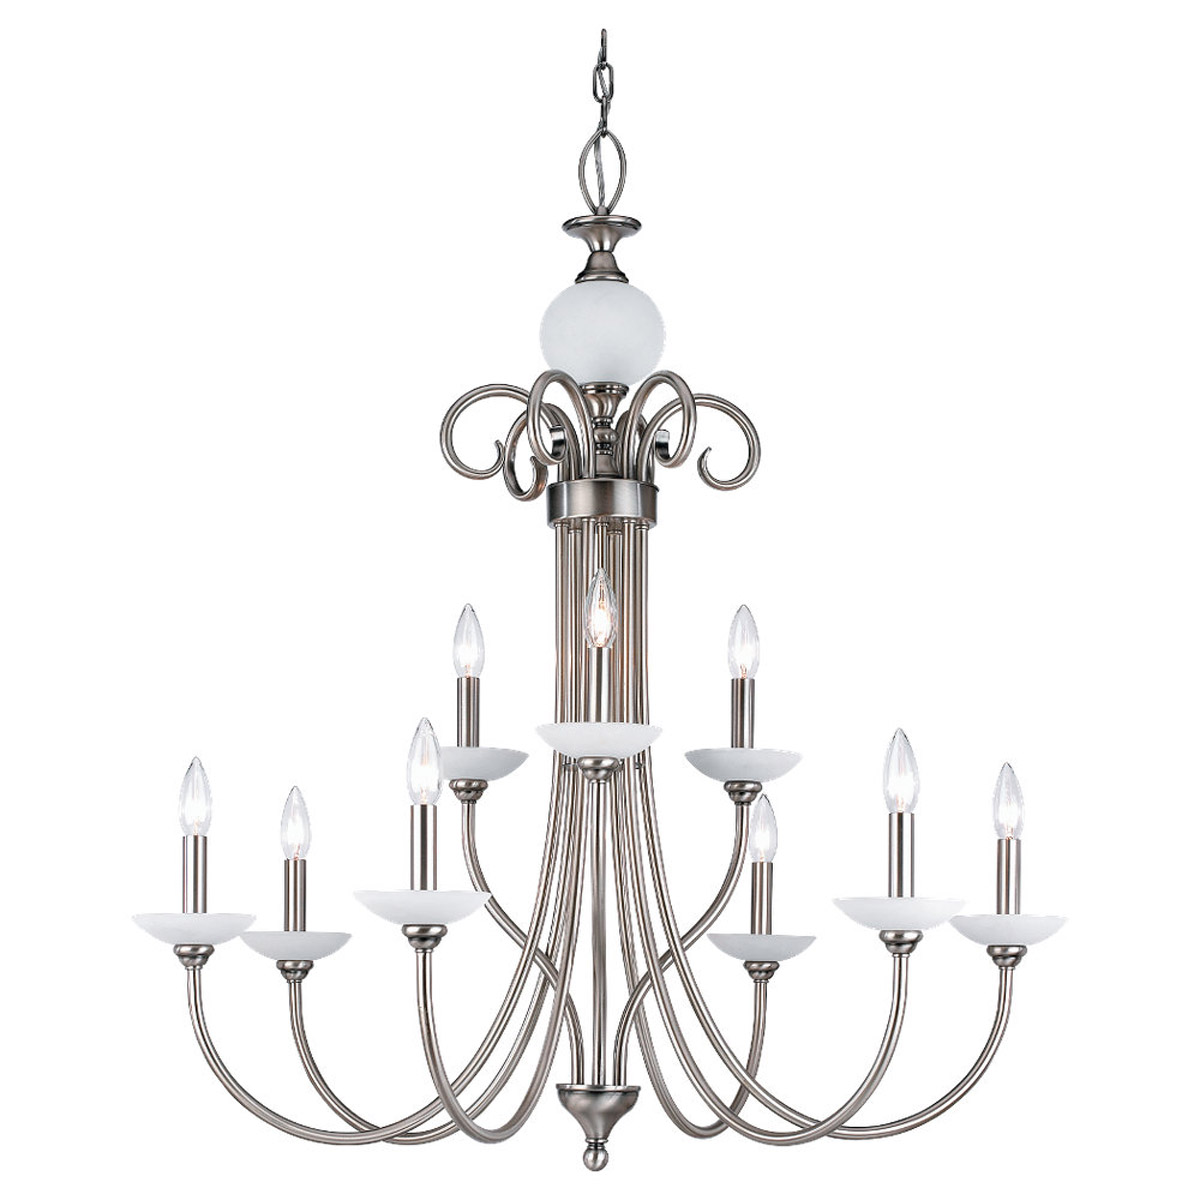 Sea Gull Lighting Montclaire 9 Light Chandelier in Antique Brushed Nickel 31108-965 photo